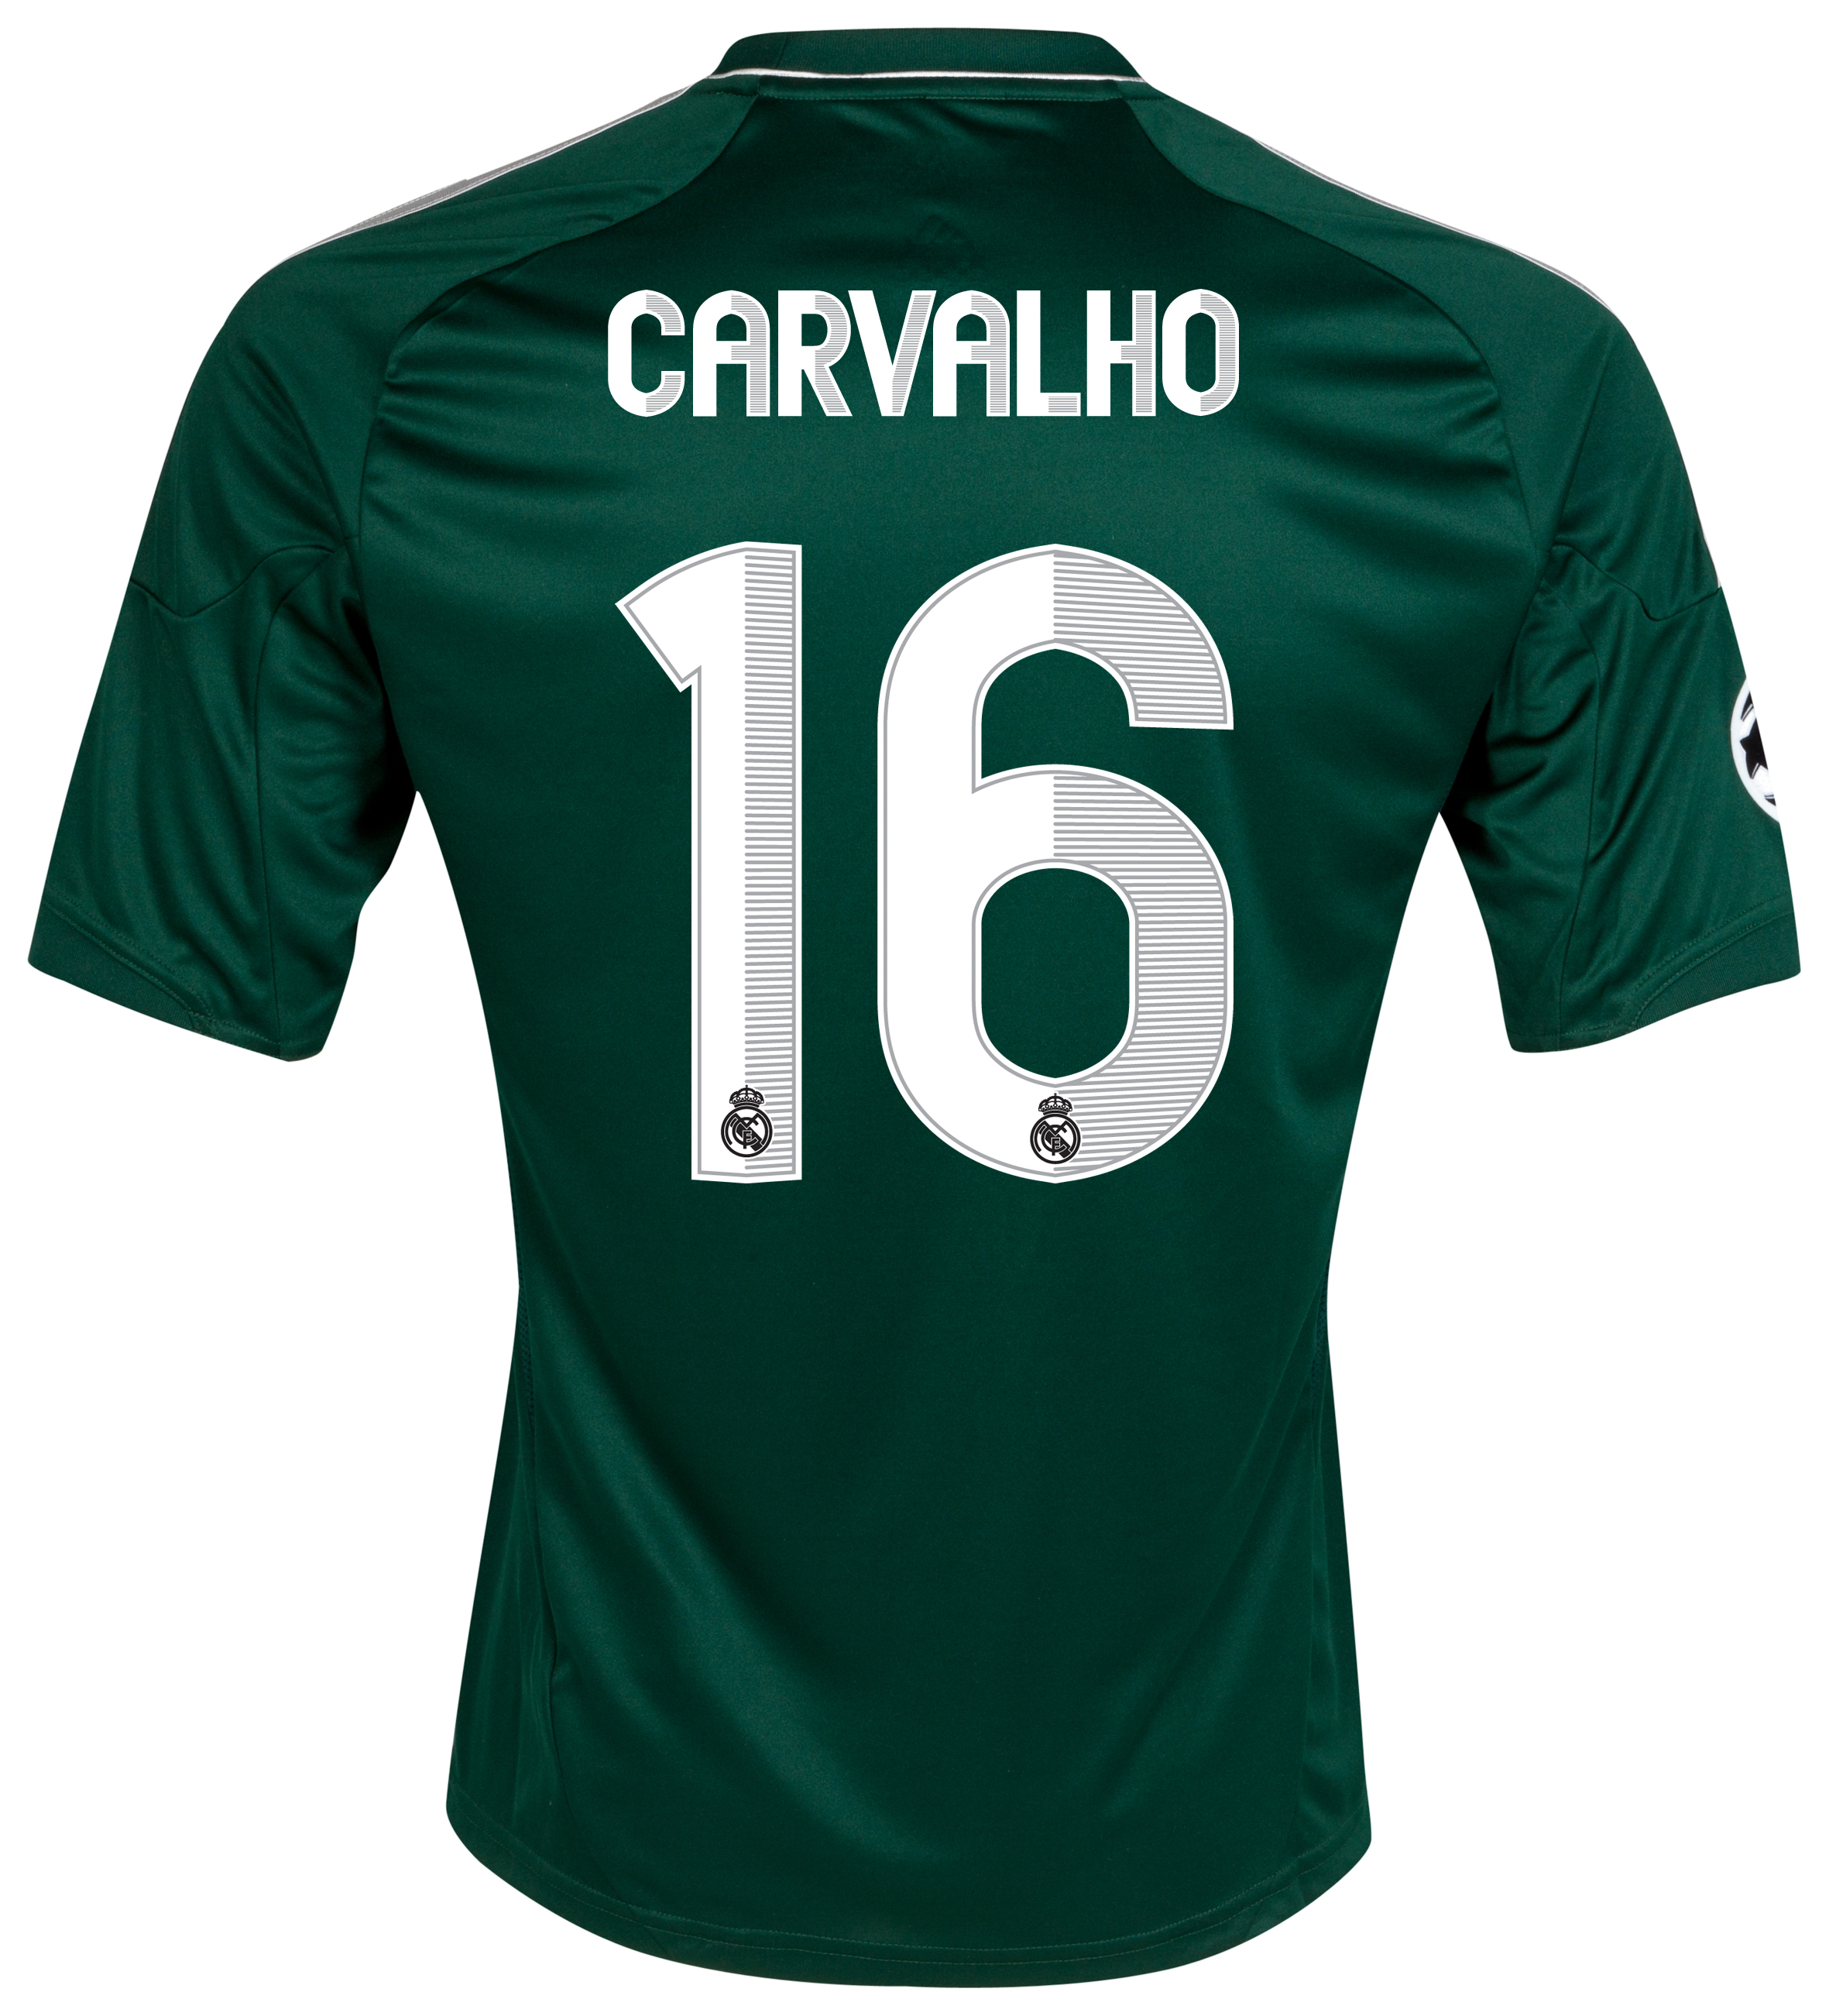 Real Madrid UEFA Champions League Third Shirt 2012/13 - Kids with Carvalho 16 printing